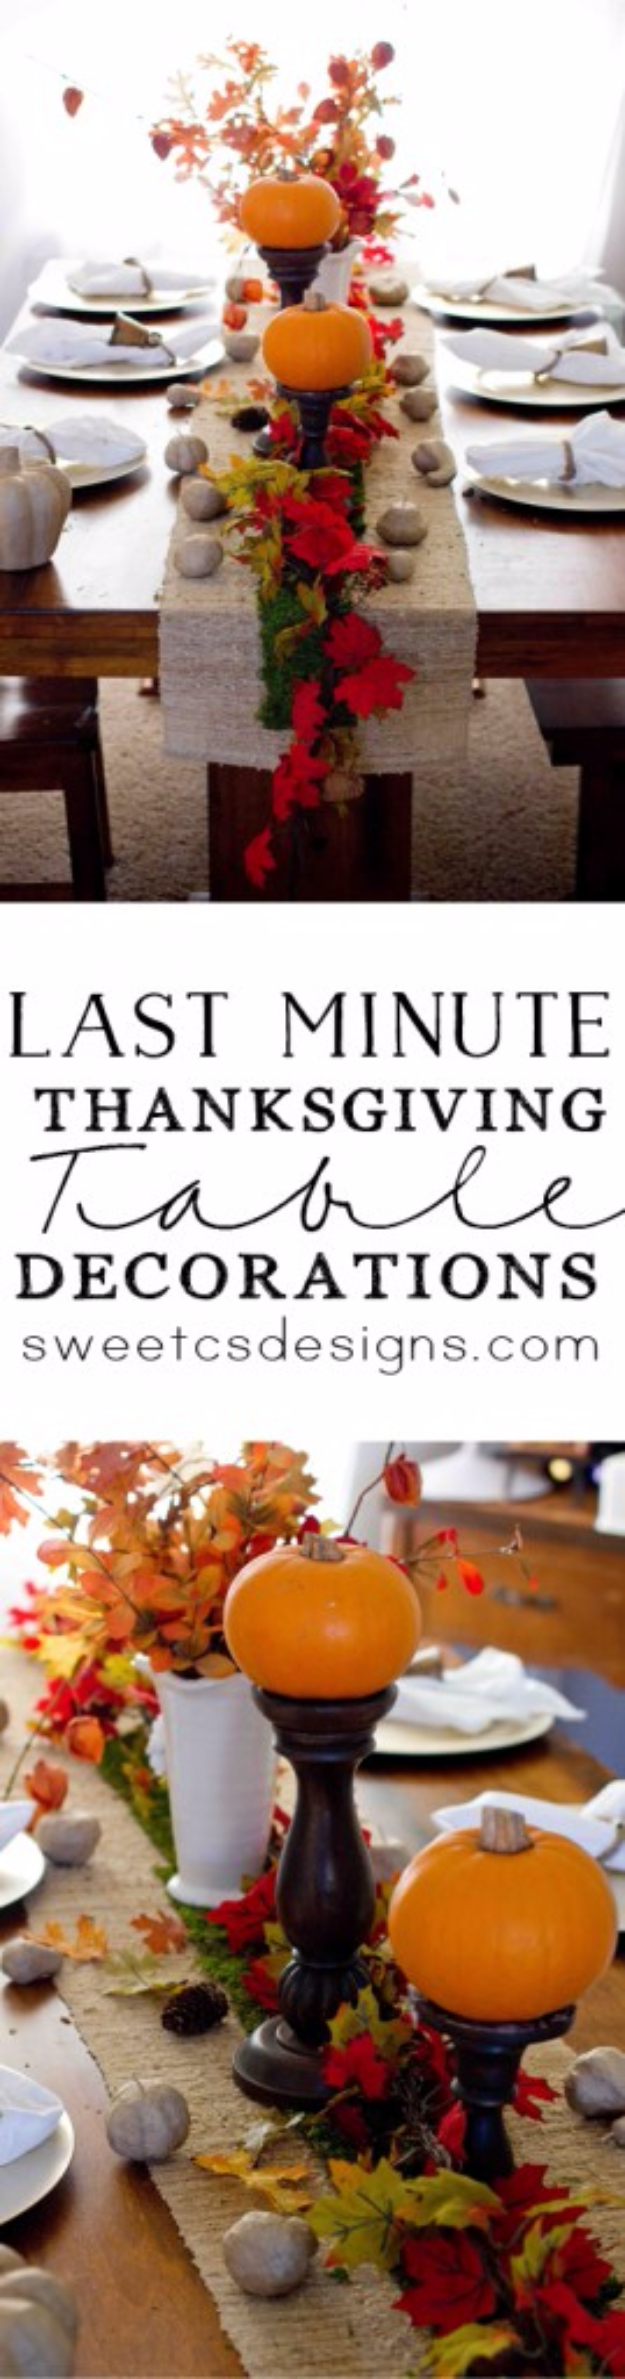 Best Thanksgiving Centerpieces and Table Decor - Last Minute Thanksgiving Table Decorations - Creative Crafts for Your Thanksgiving Dinner Table. Mason Jars, Flowers, Leaves, Candles, Pumpkin Ideas #thanksgiving #diy